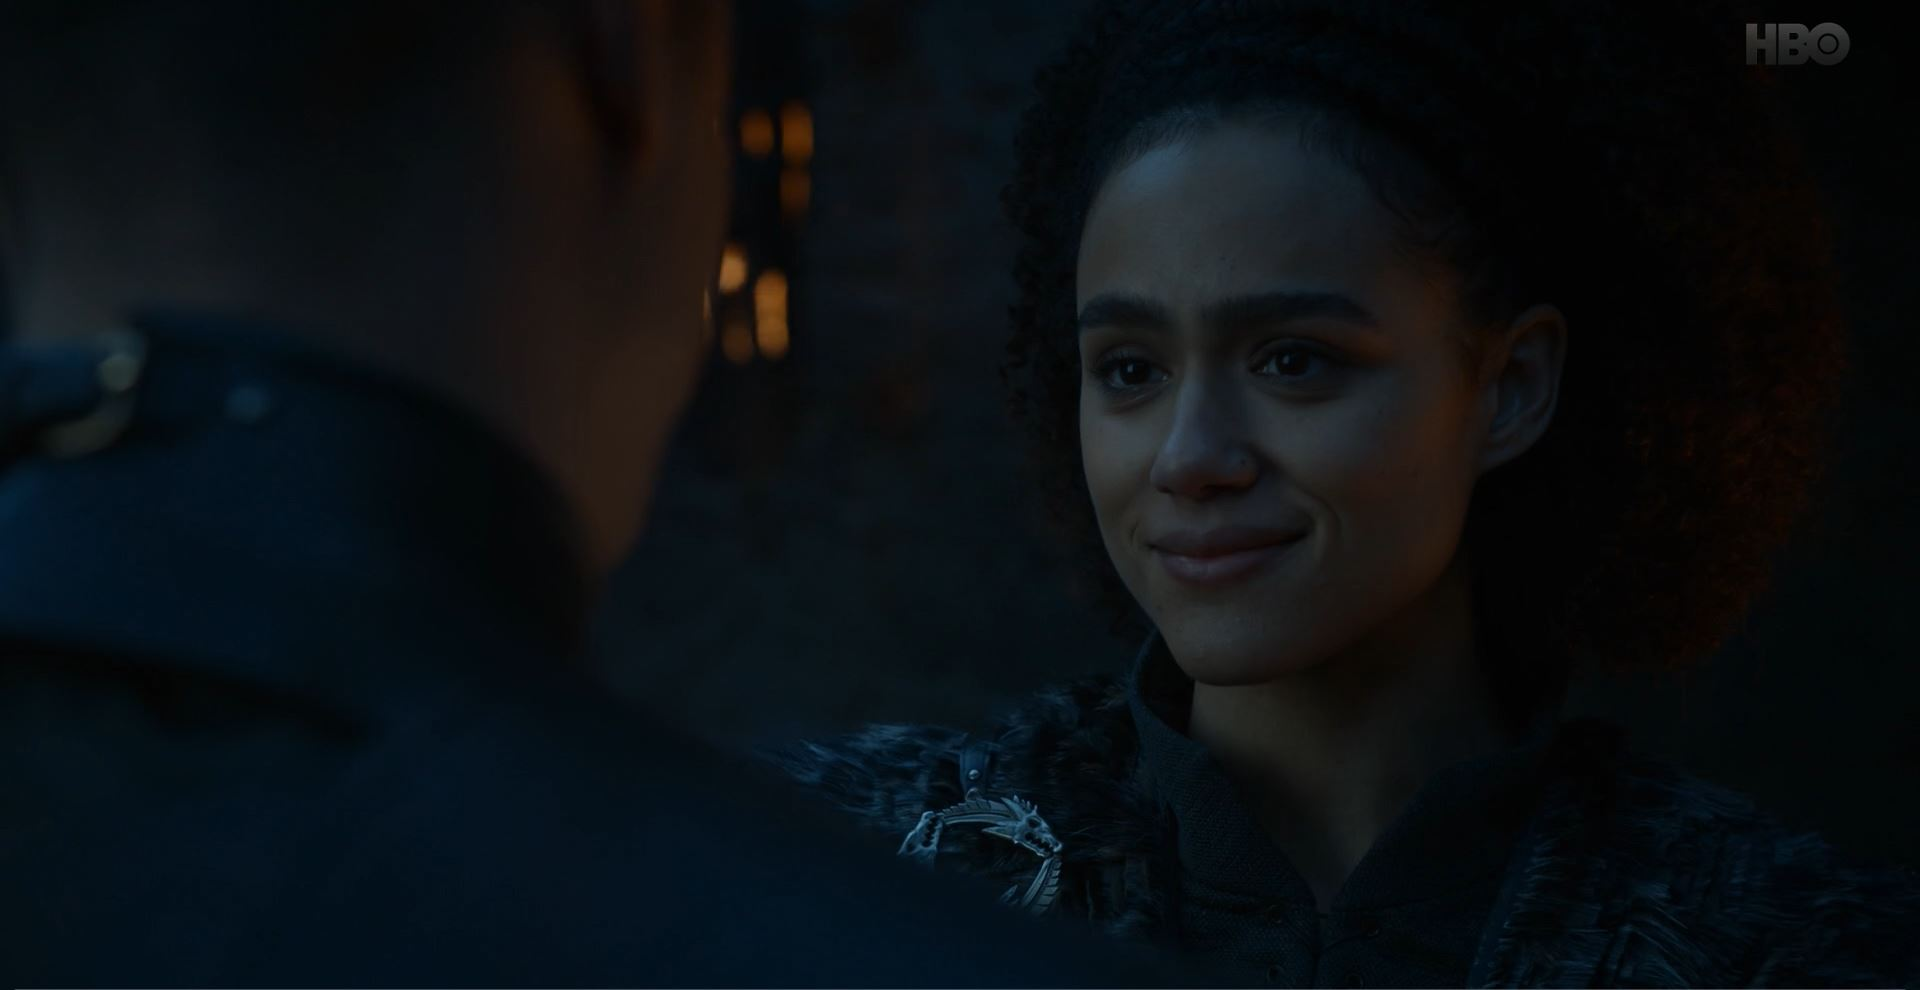 Game of Thrones S08E02 A Knight of the Seven Kingdoms Review - Missandei smiles at Grey Worm